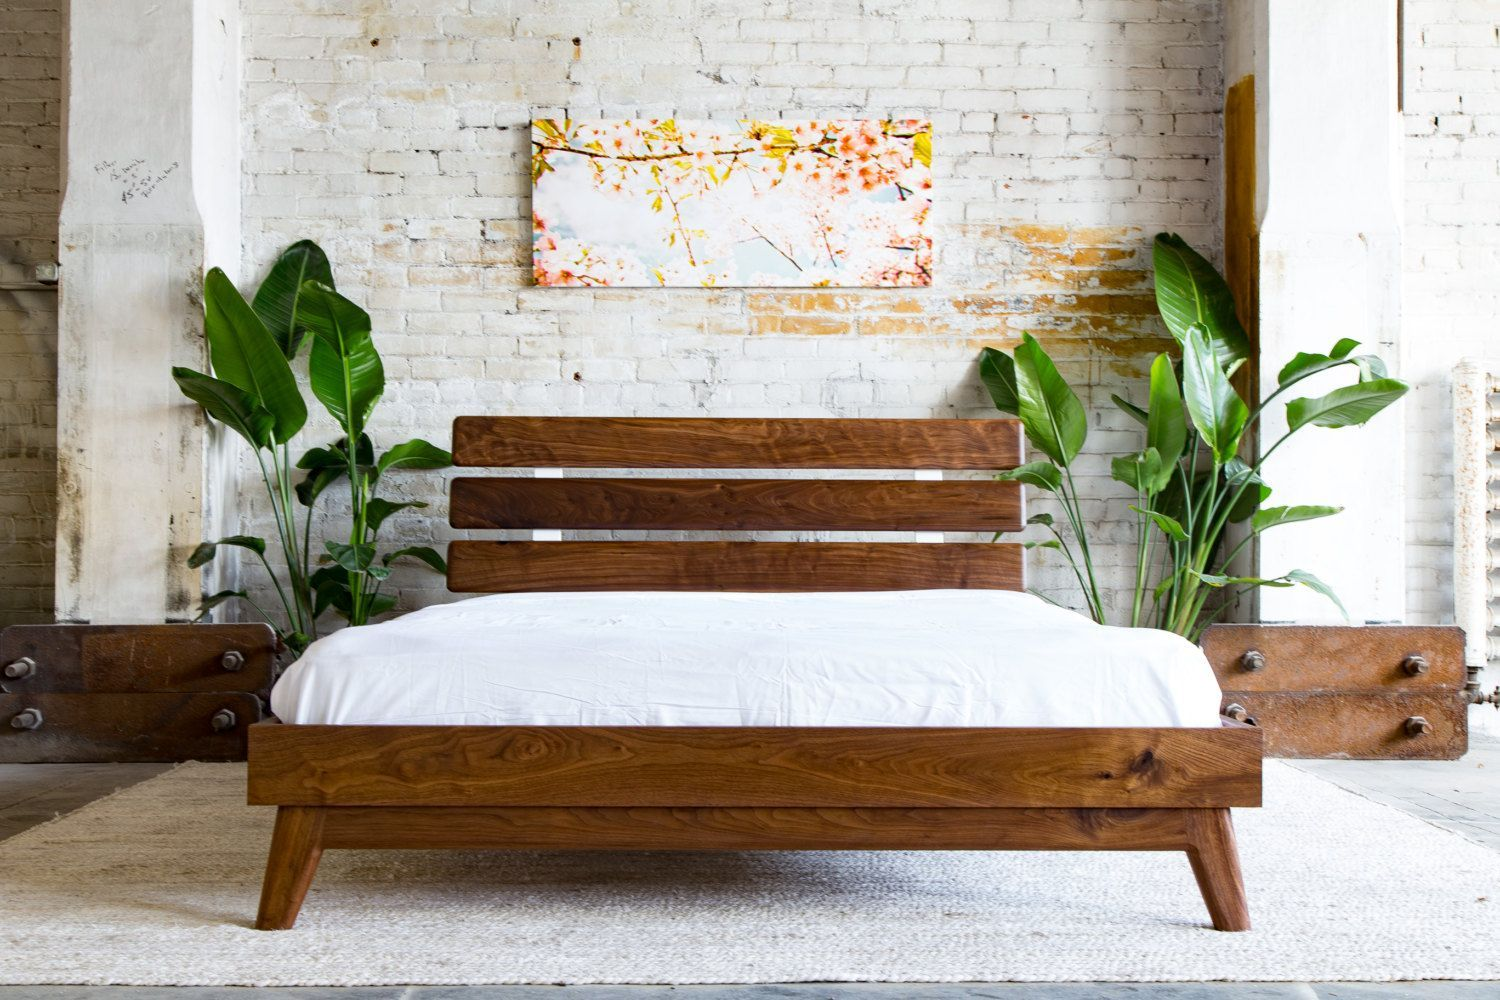 The 7 best Etsy furniture shops to check out now | Furniture ...